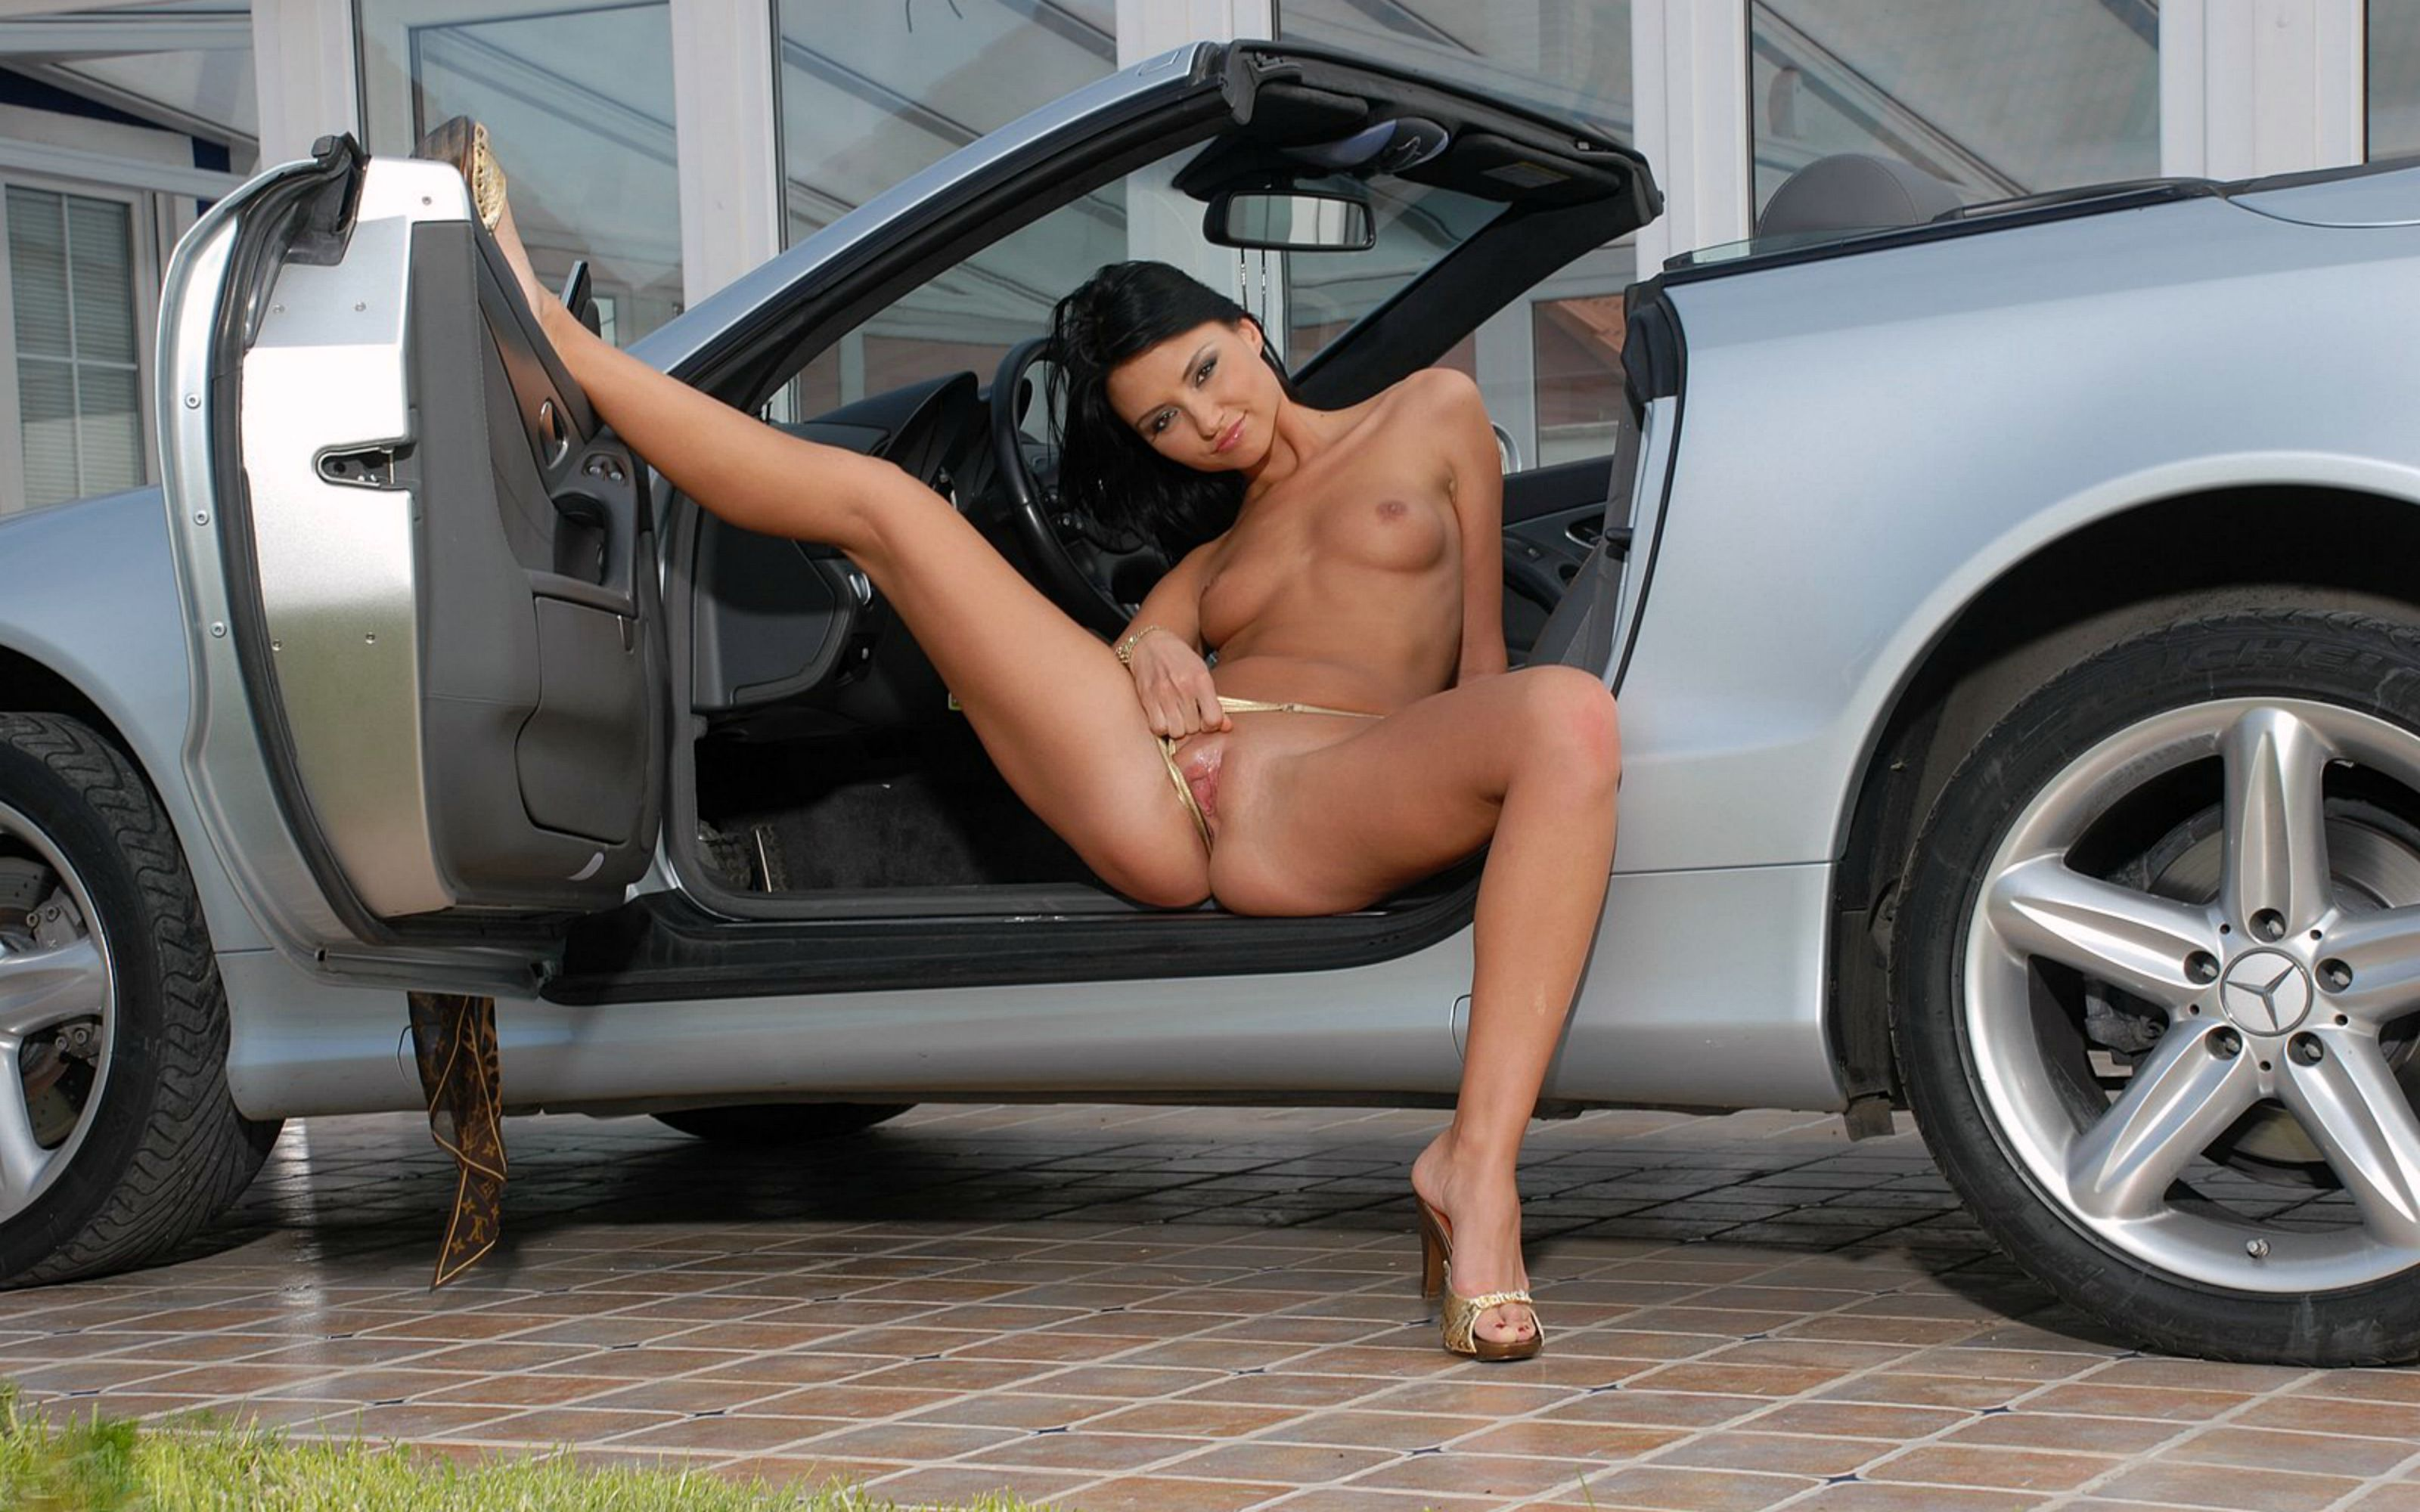 Nudes laying on cars new porn